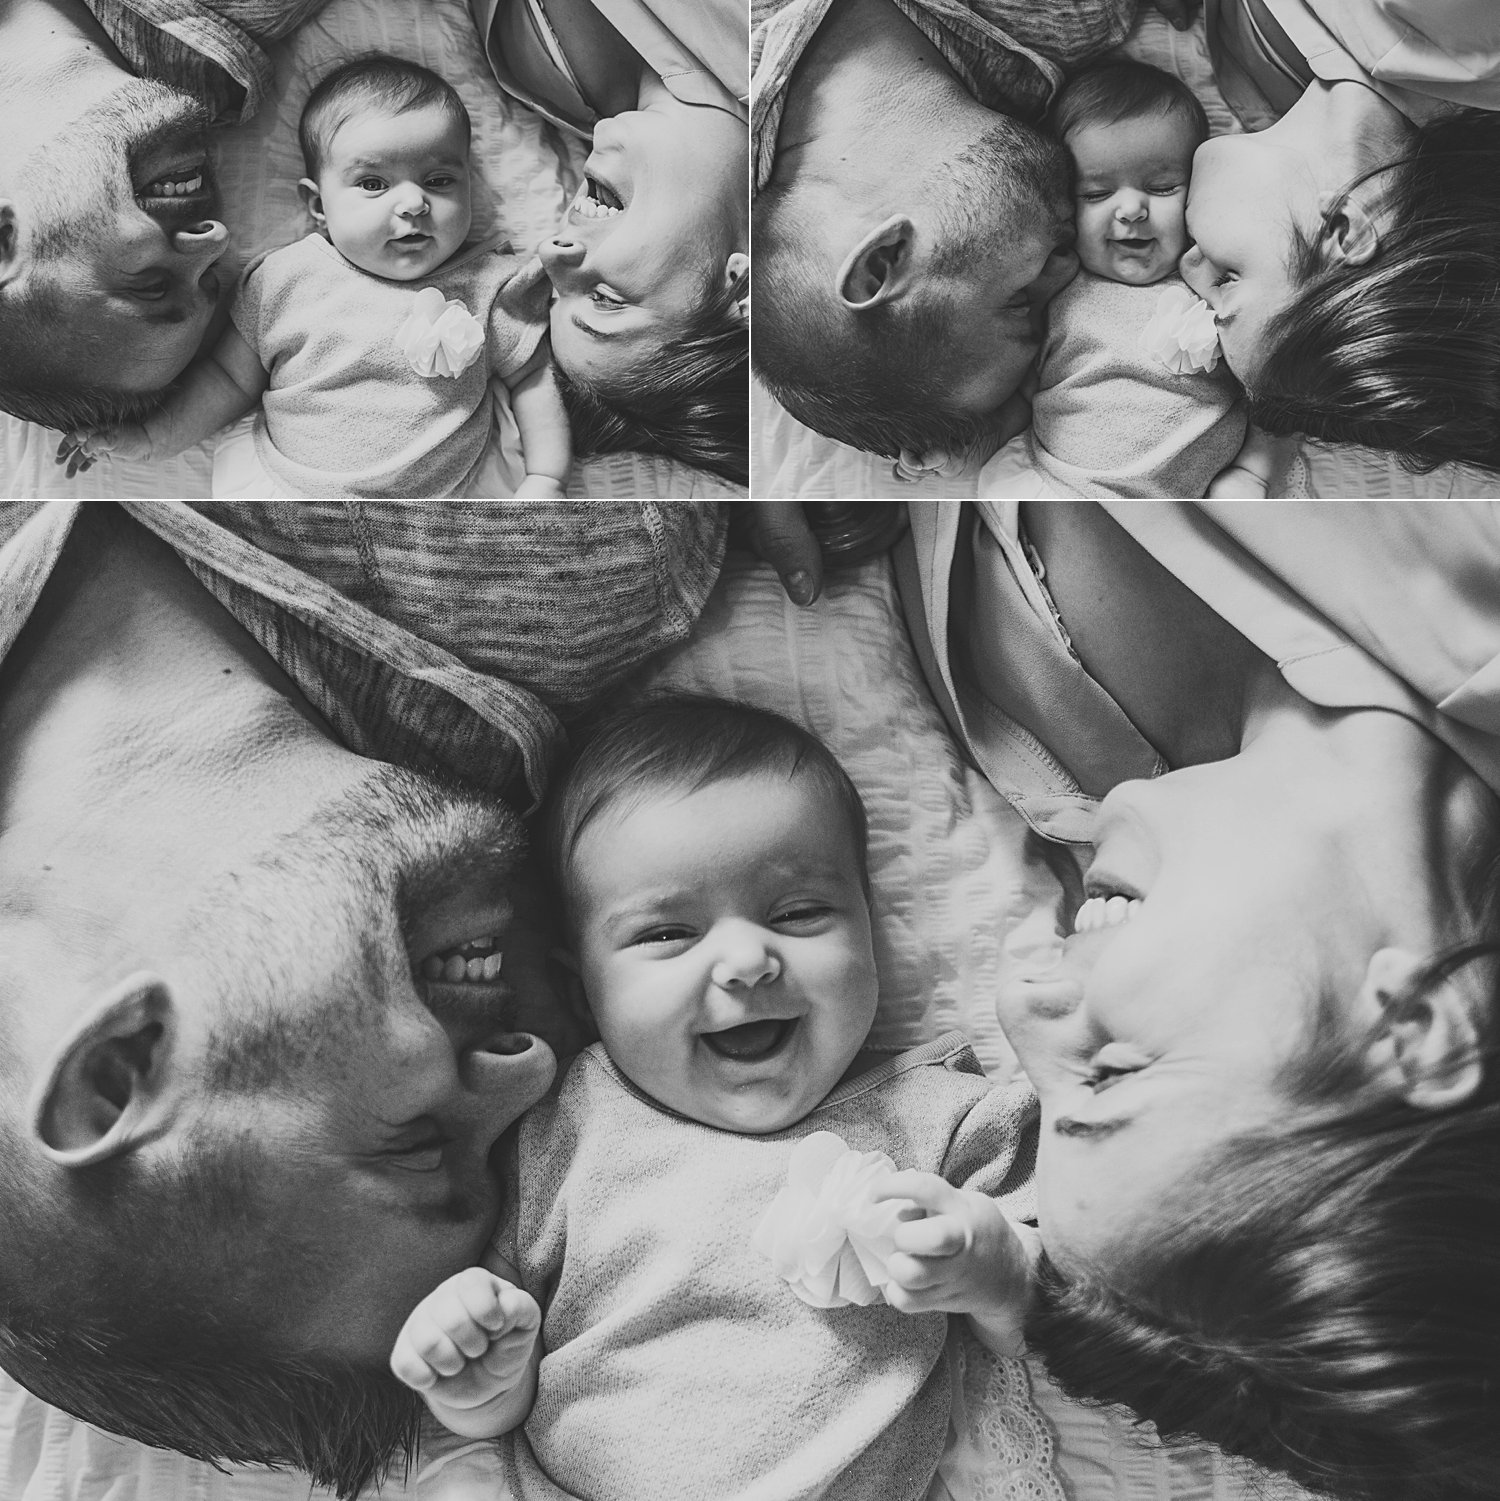 Family portraits with baby on bed with mom and dad